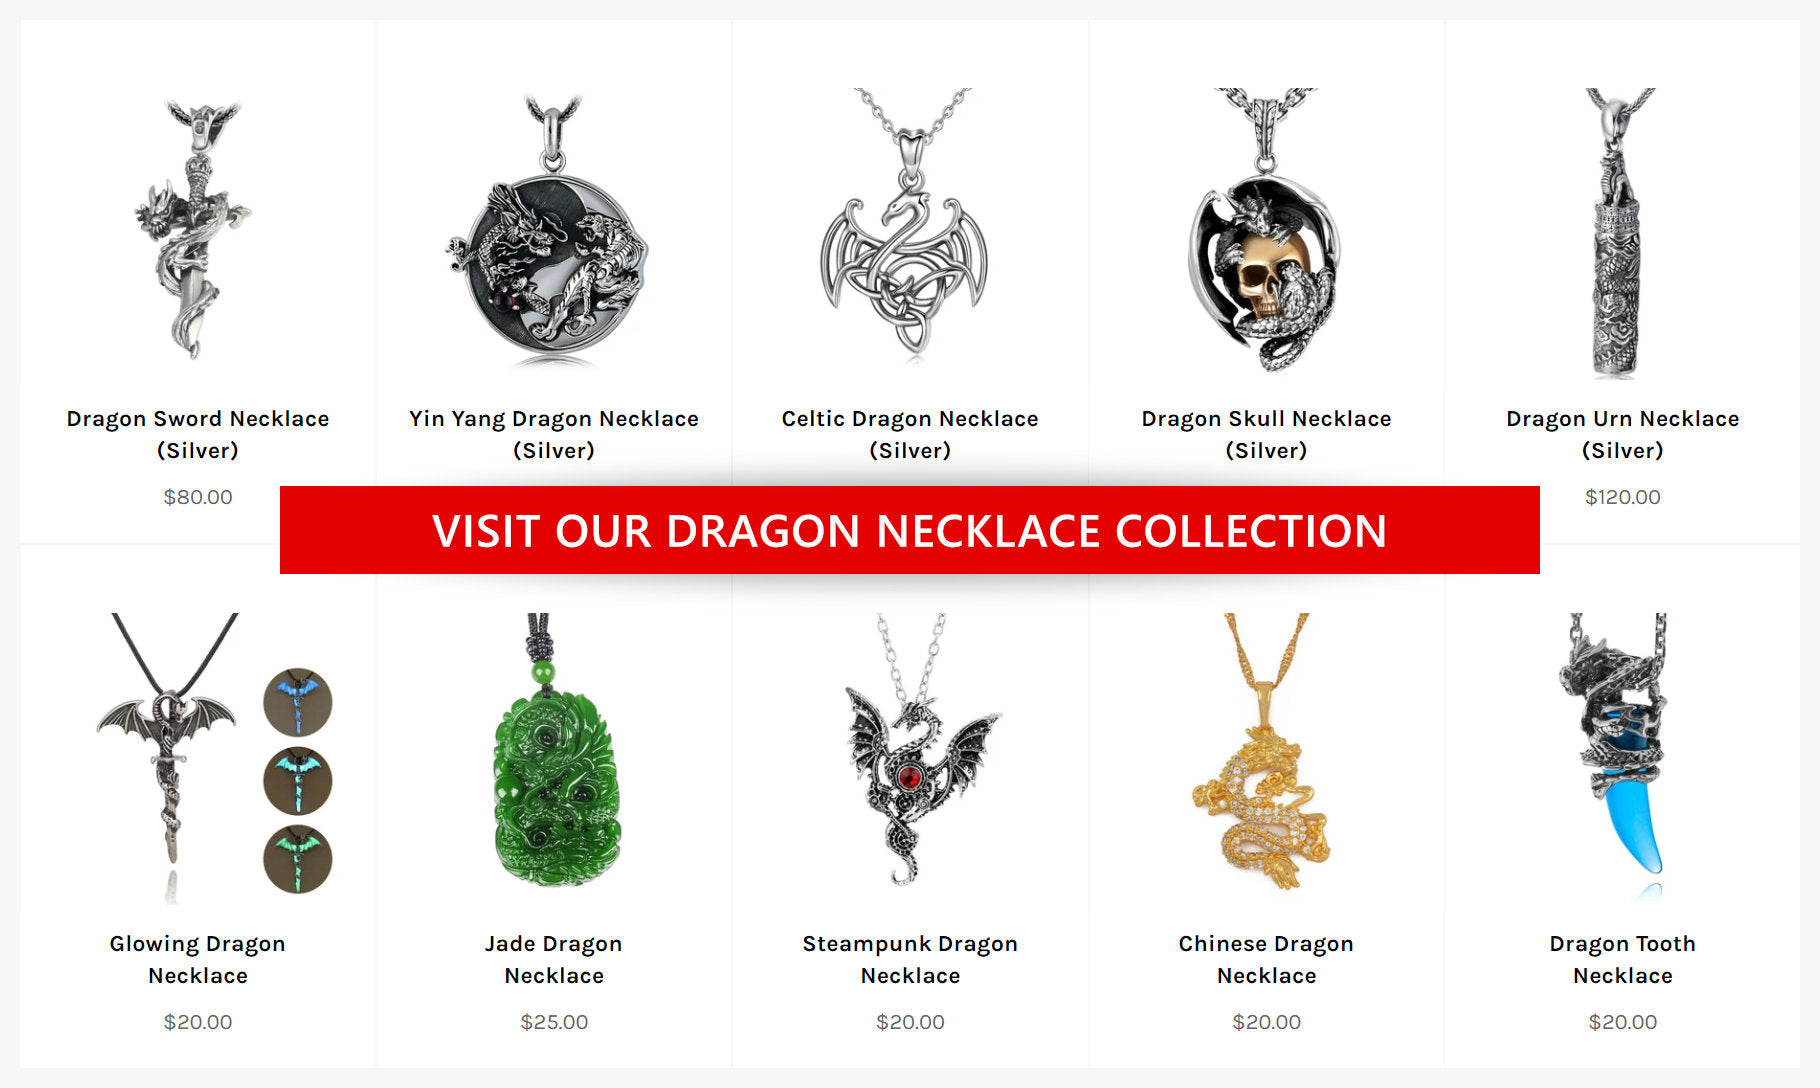 The Dragon Shop's necklaces and pendants